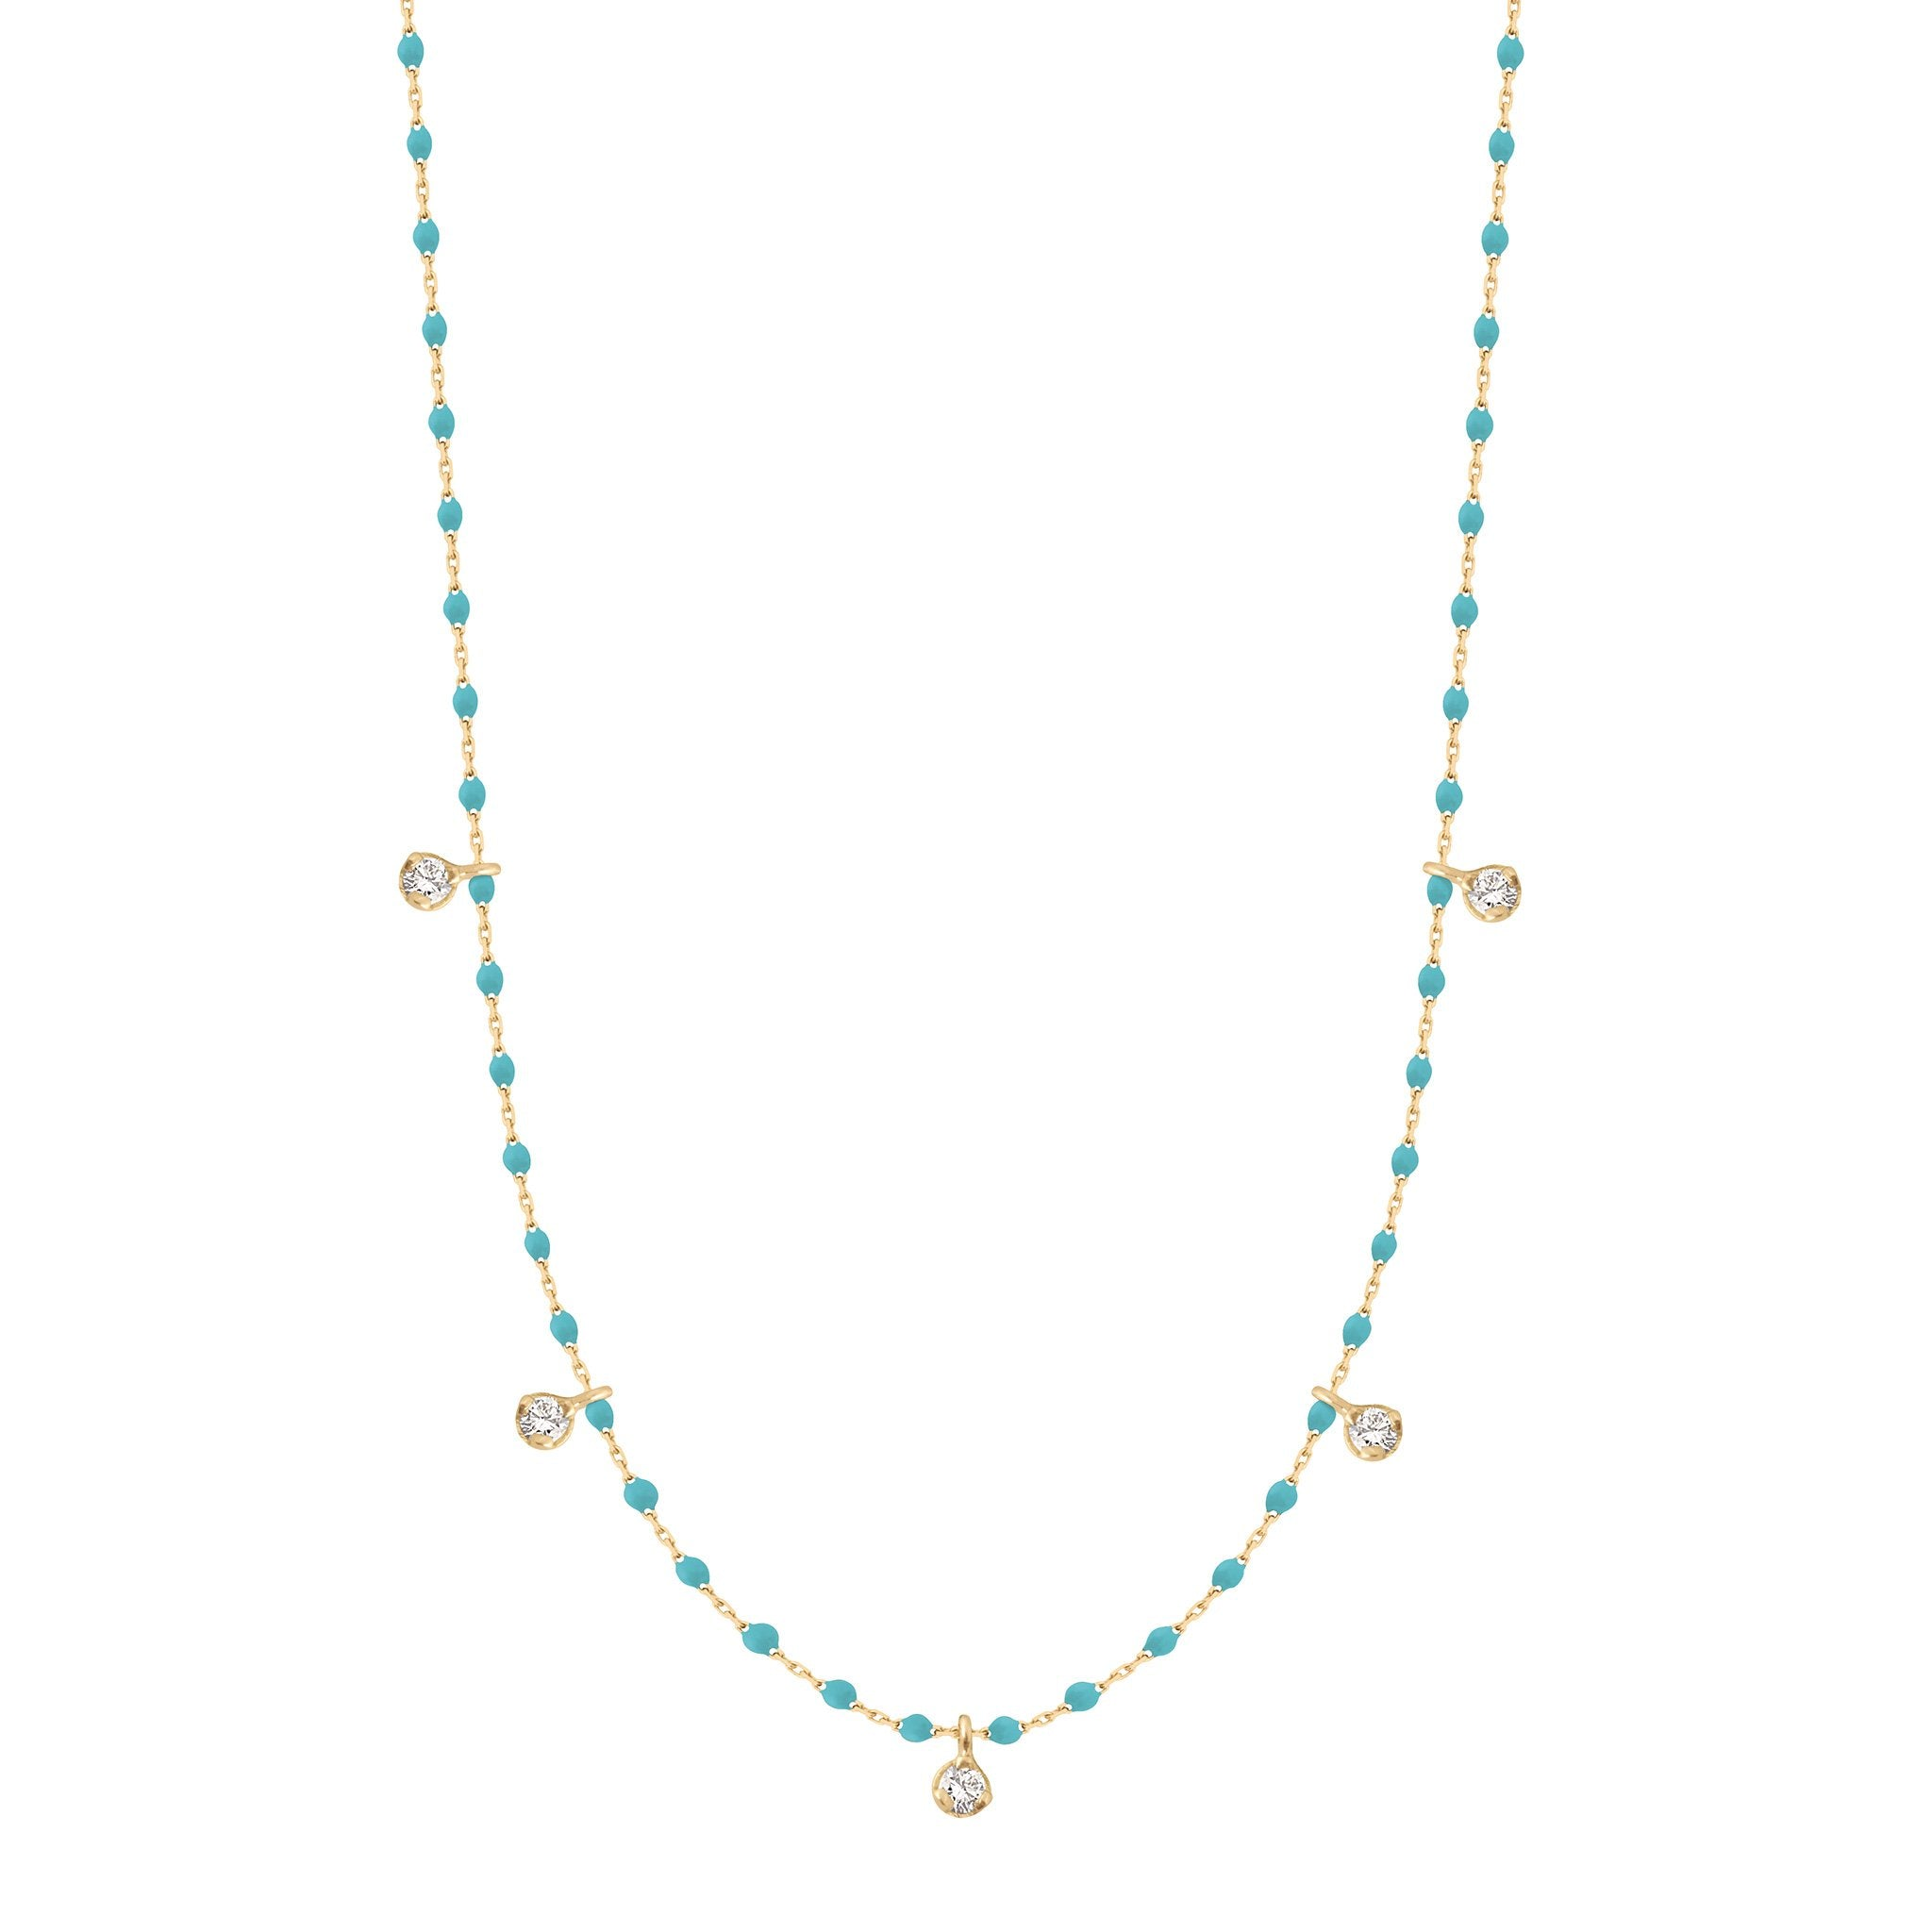 Gigi Clozeau - Collier turquoise vert Mini Gigi, or jaune, 5 diamants, 55 cm